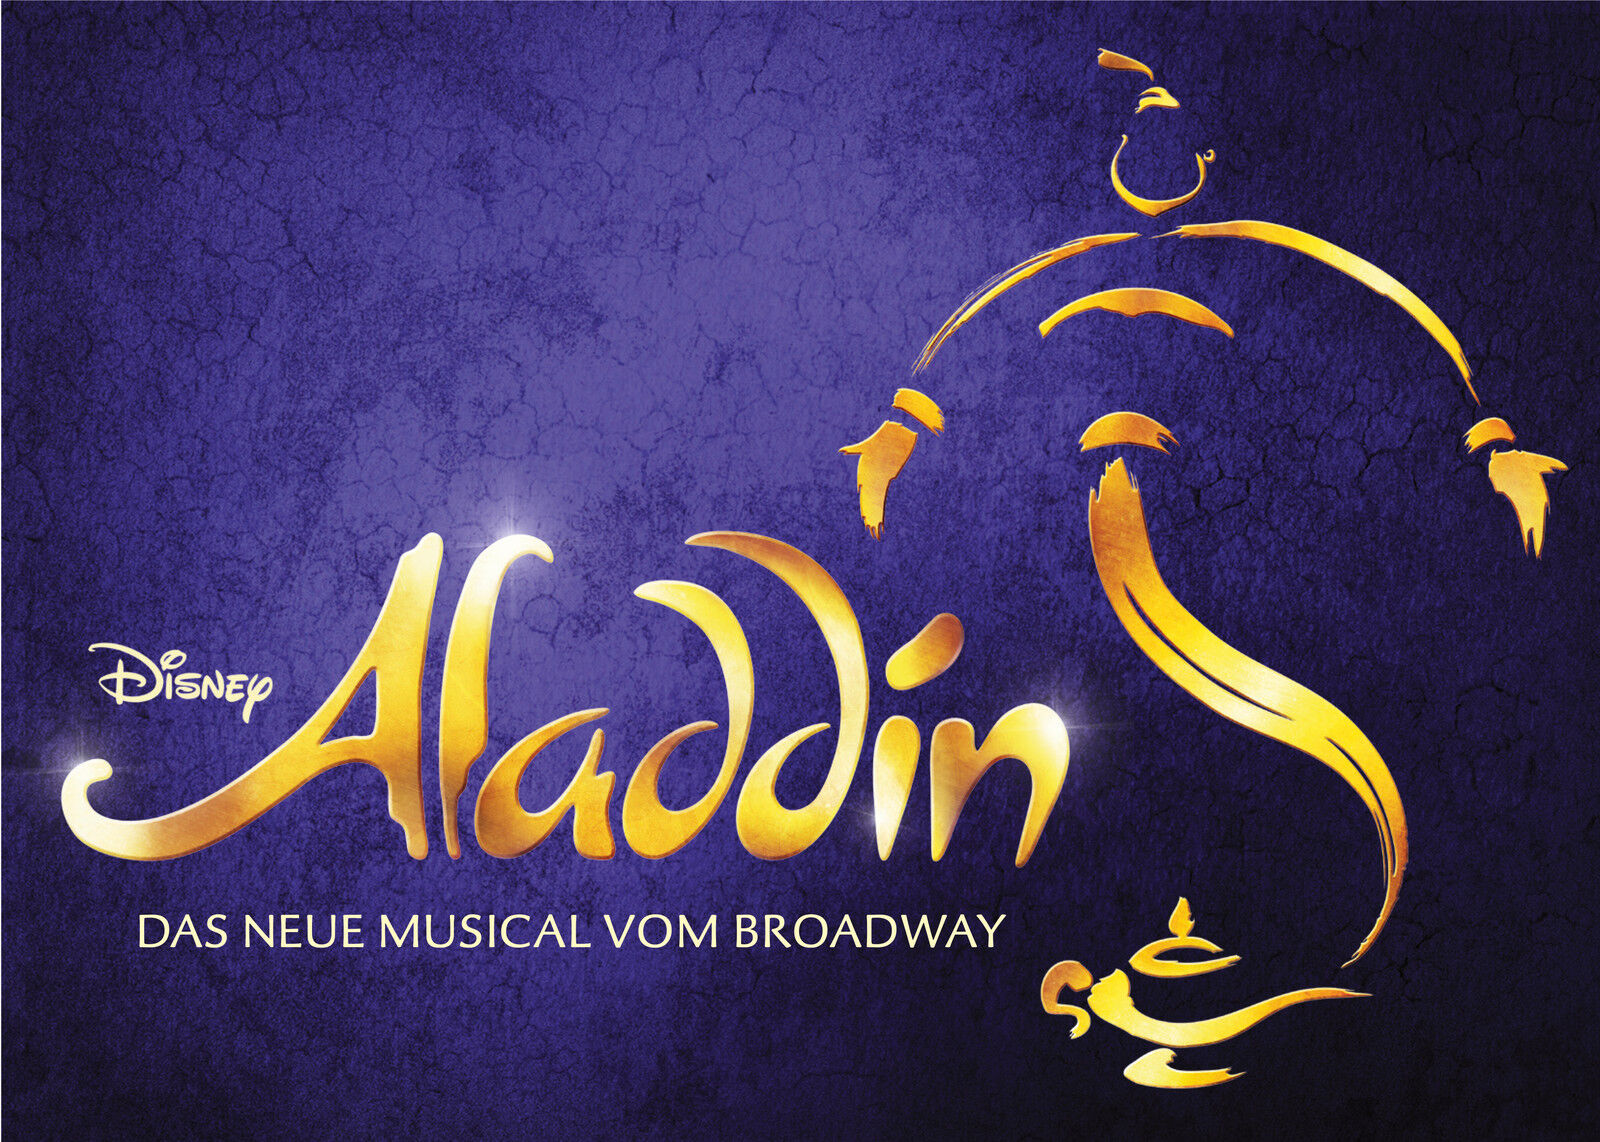 aladdin musical 2 tickets hotel 4 sterne 2 tage hamburg 2 personen eur 206 00 picclick de. Black Bedroom Furniture Sets. Home Design Ideas